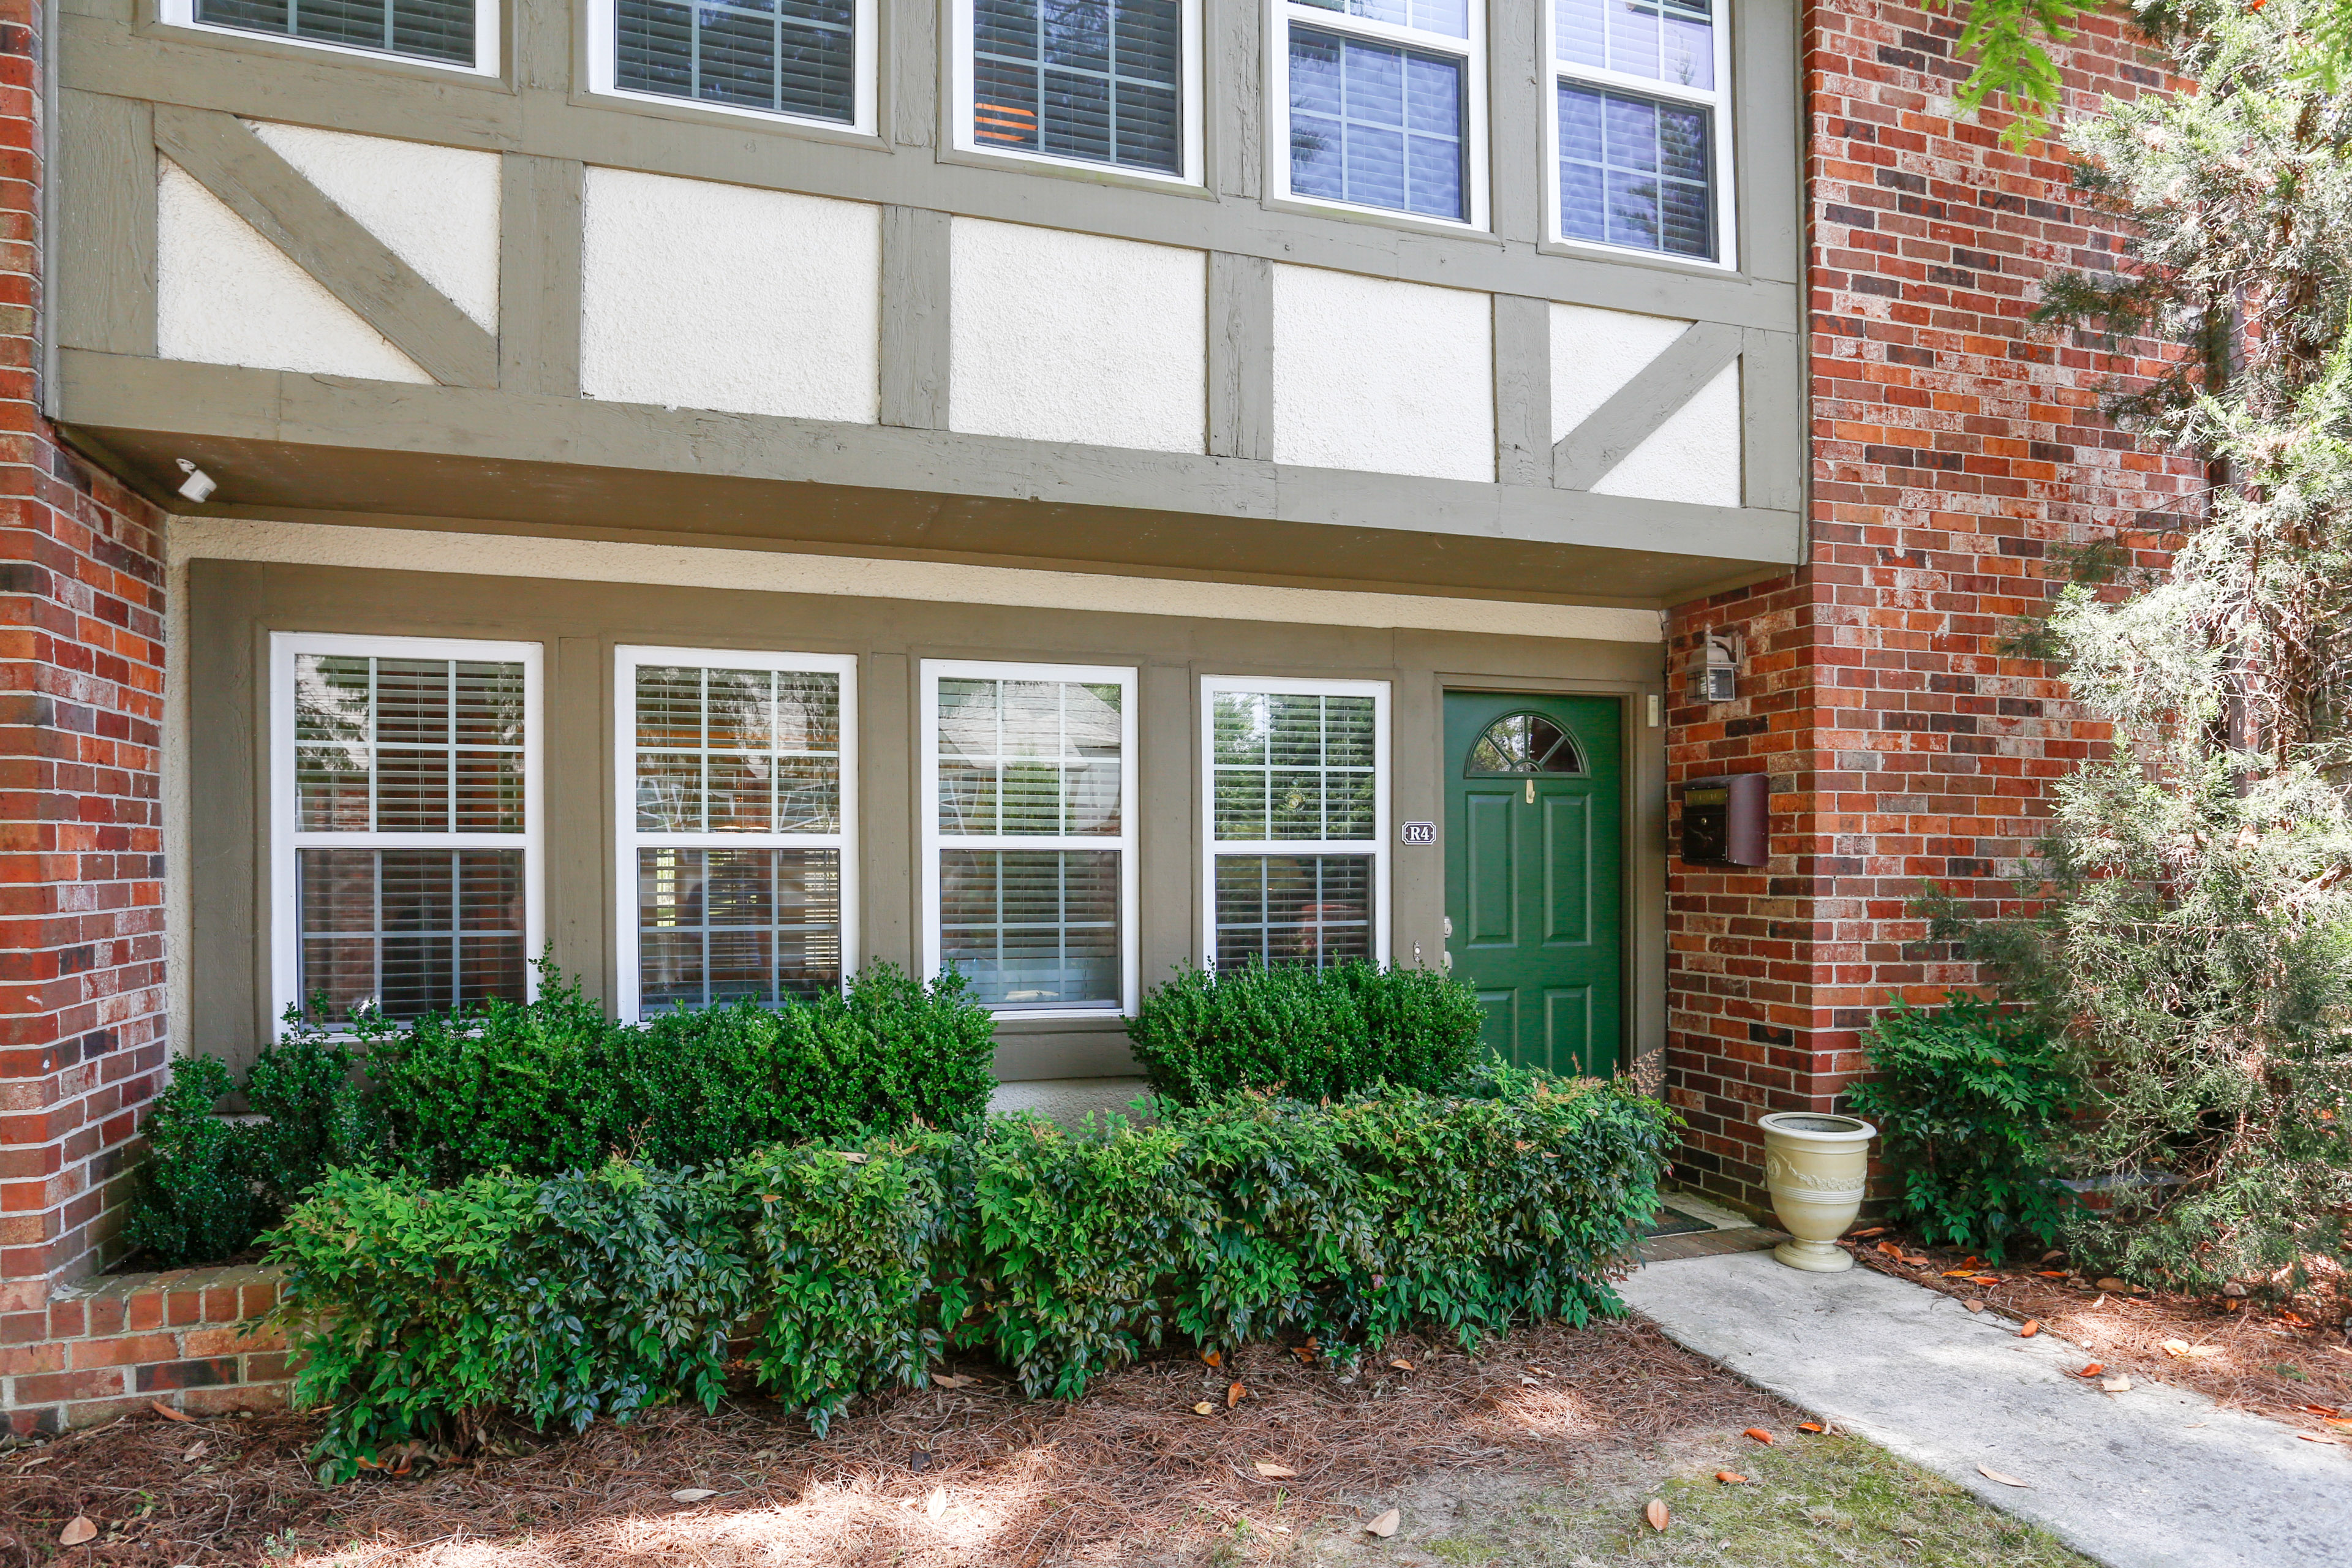 Residência urbana para Venda às 3 Bedroom 2.5 Bath Townhome in Gated Community! 2825 Northeast Expressway NE No. R4 Atlanta, Geórgia, 30345 Estados Unidos